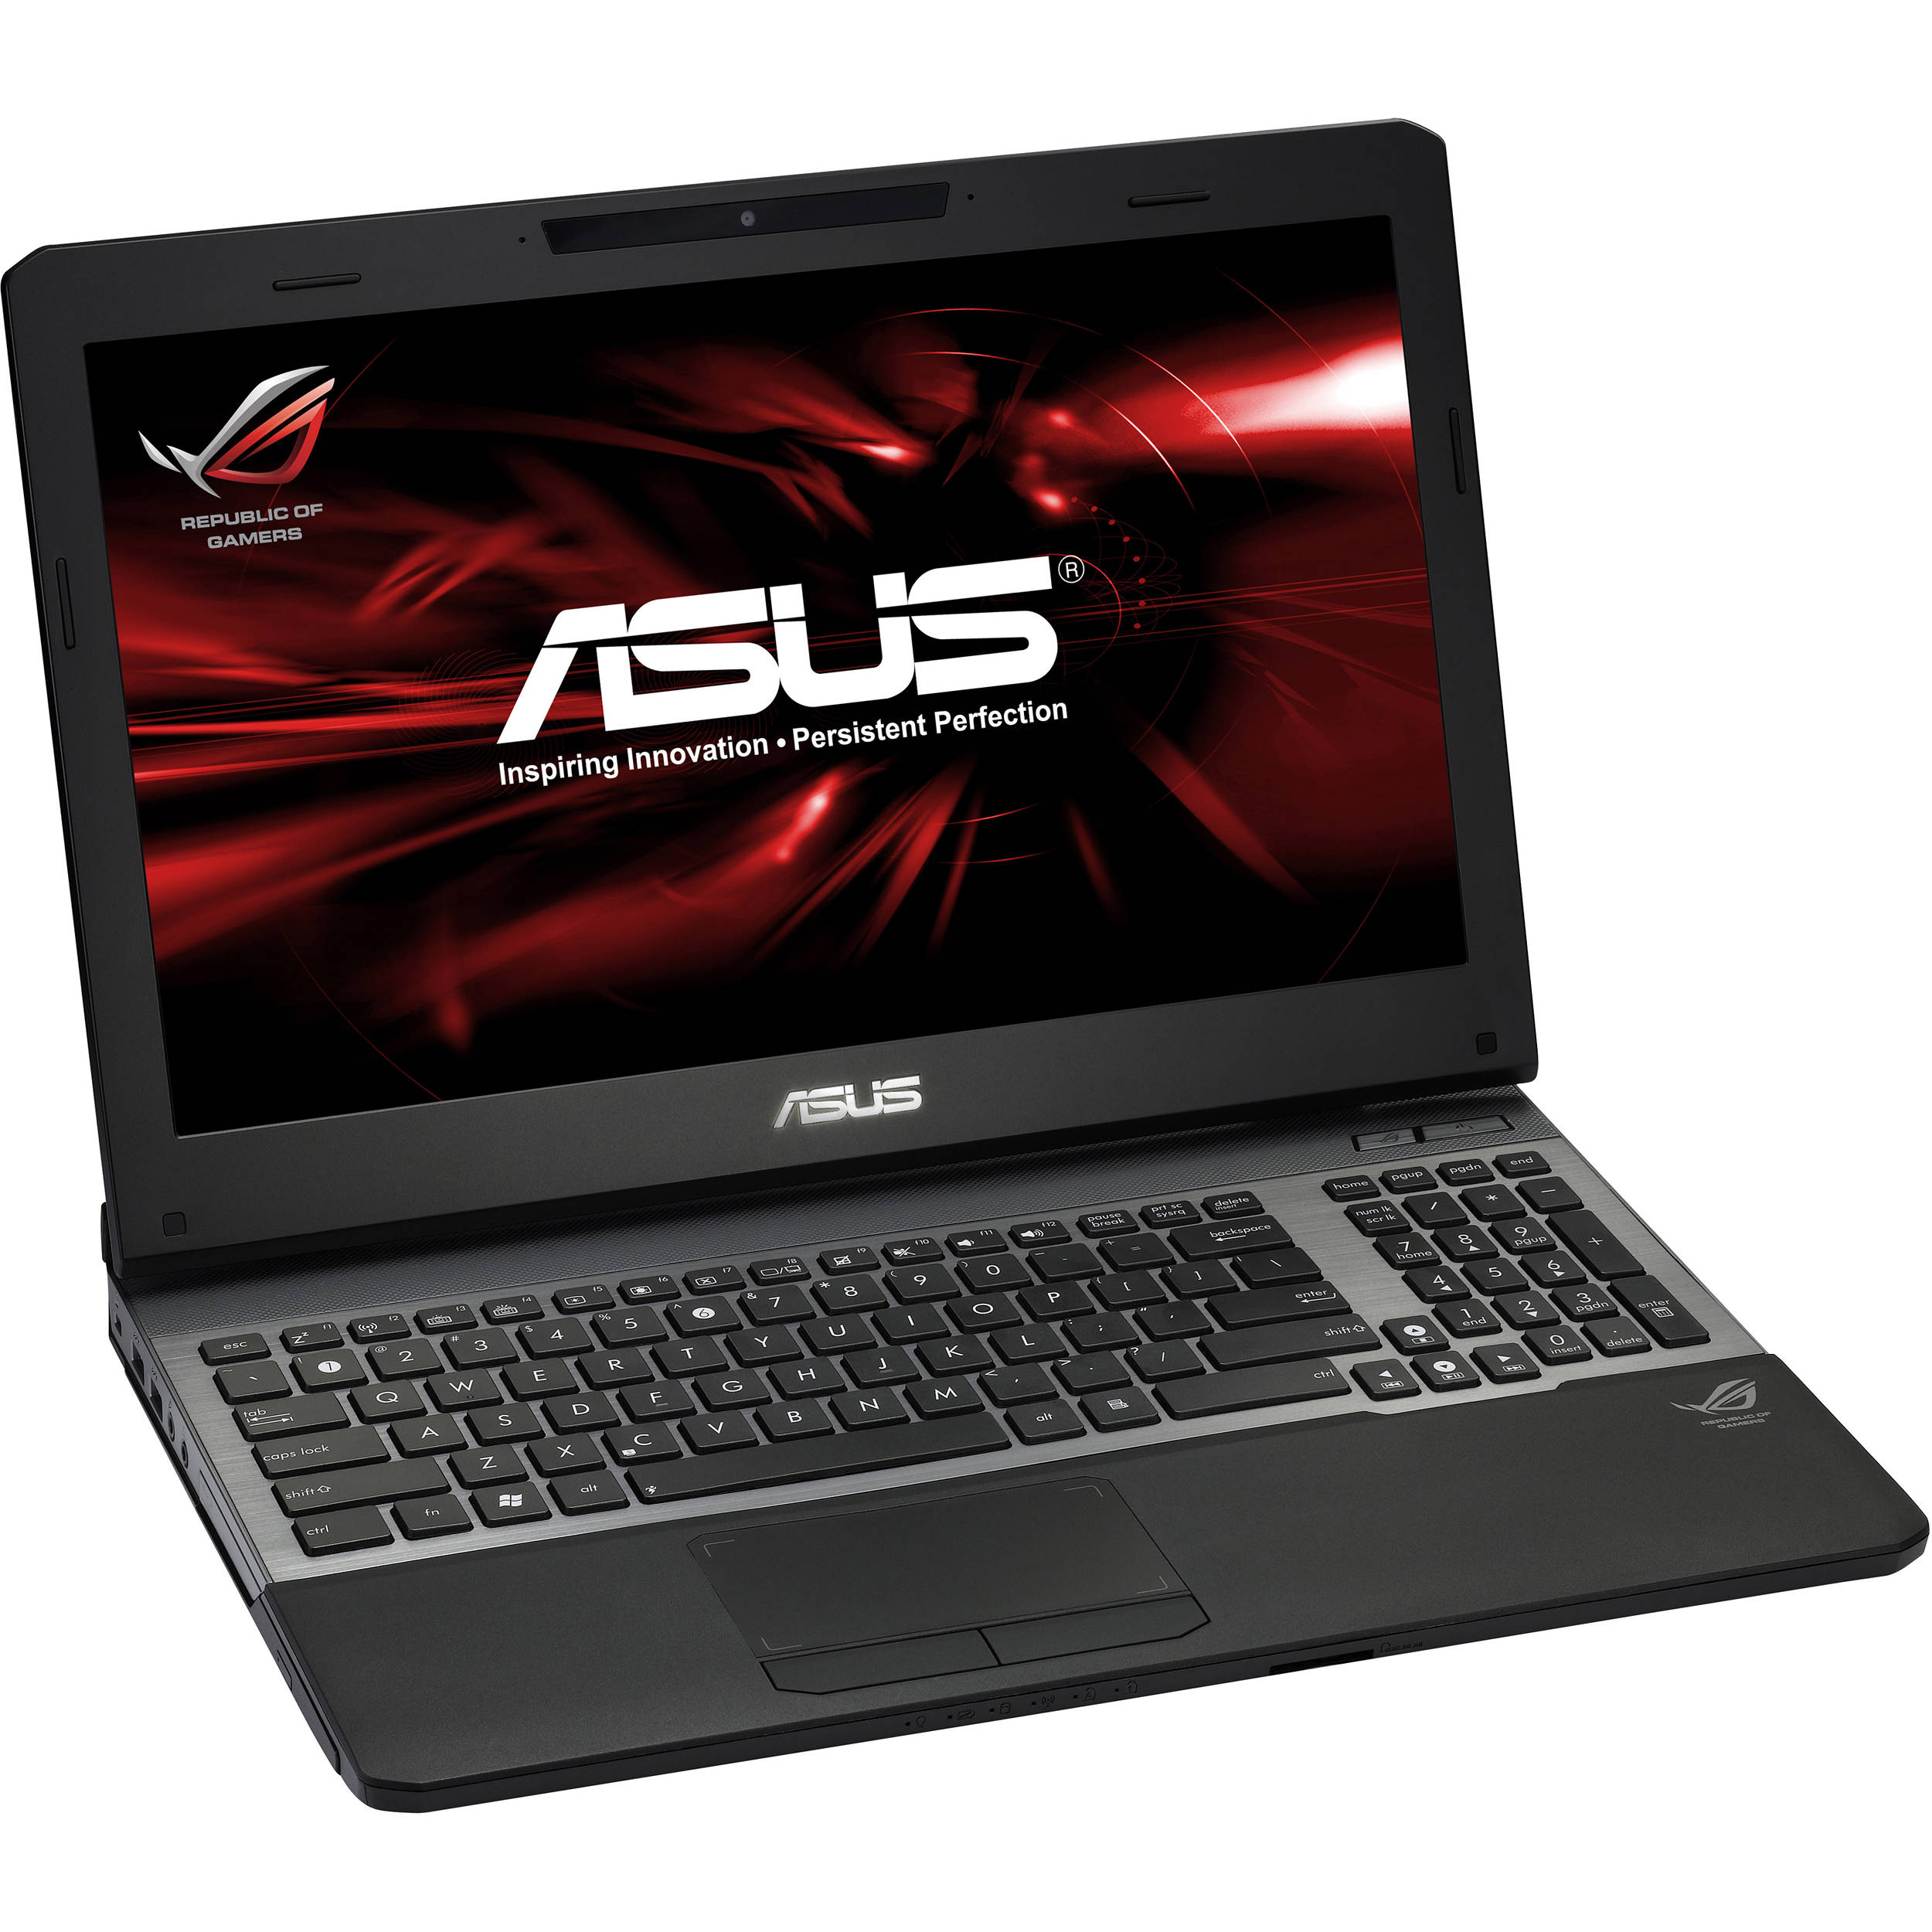 ASUS G55VW RAPID STORAGE WINDOWS VISTA DRIVER